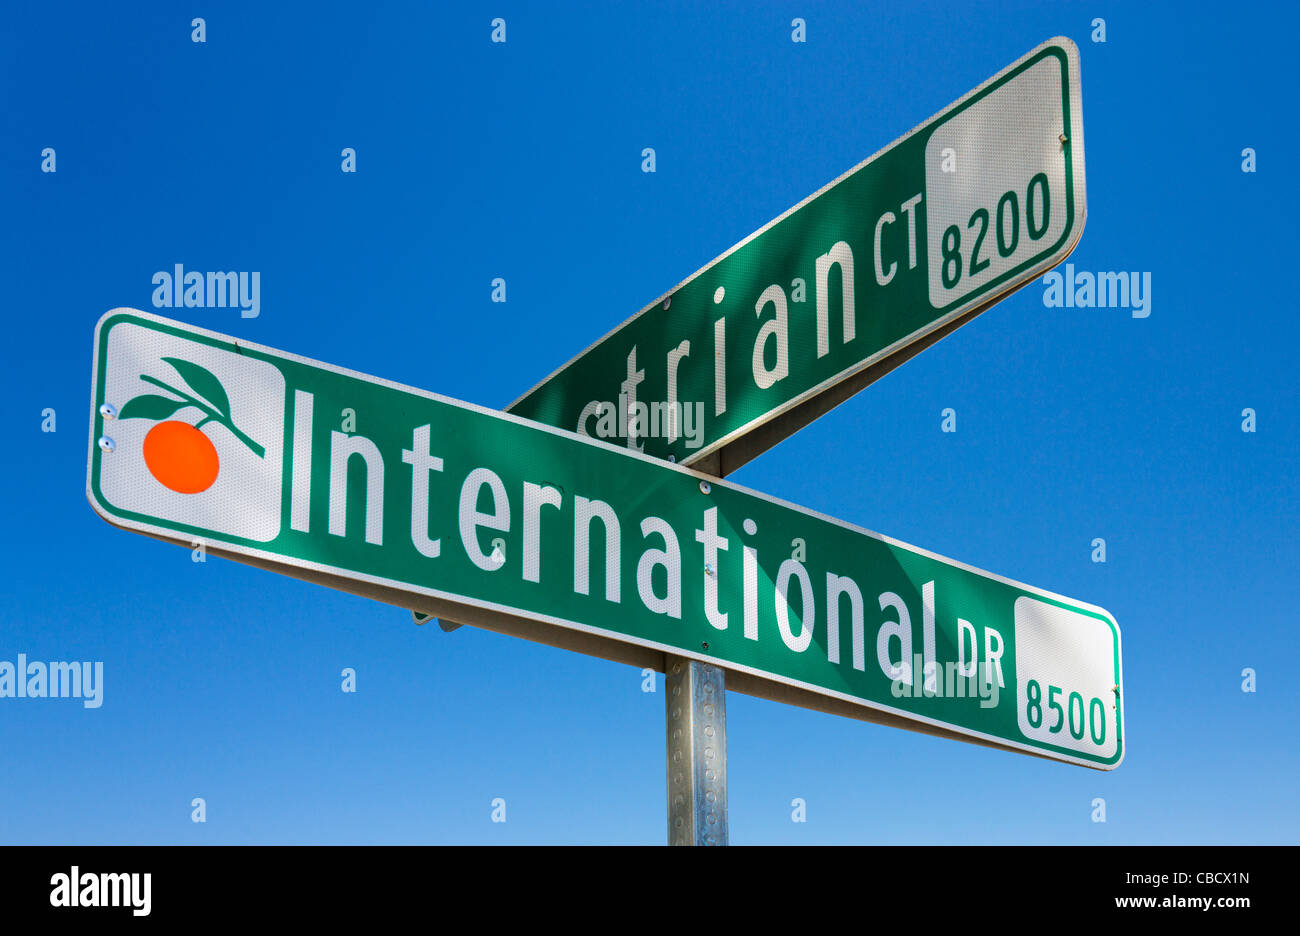 Street sign, International Drive, Orlando, Central Florida, USA - Stock Image